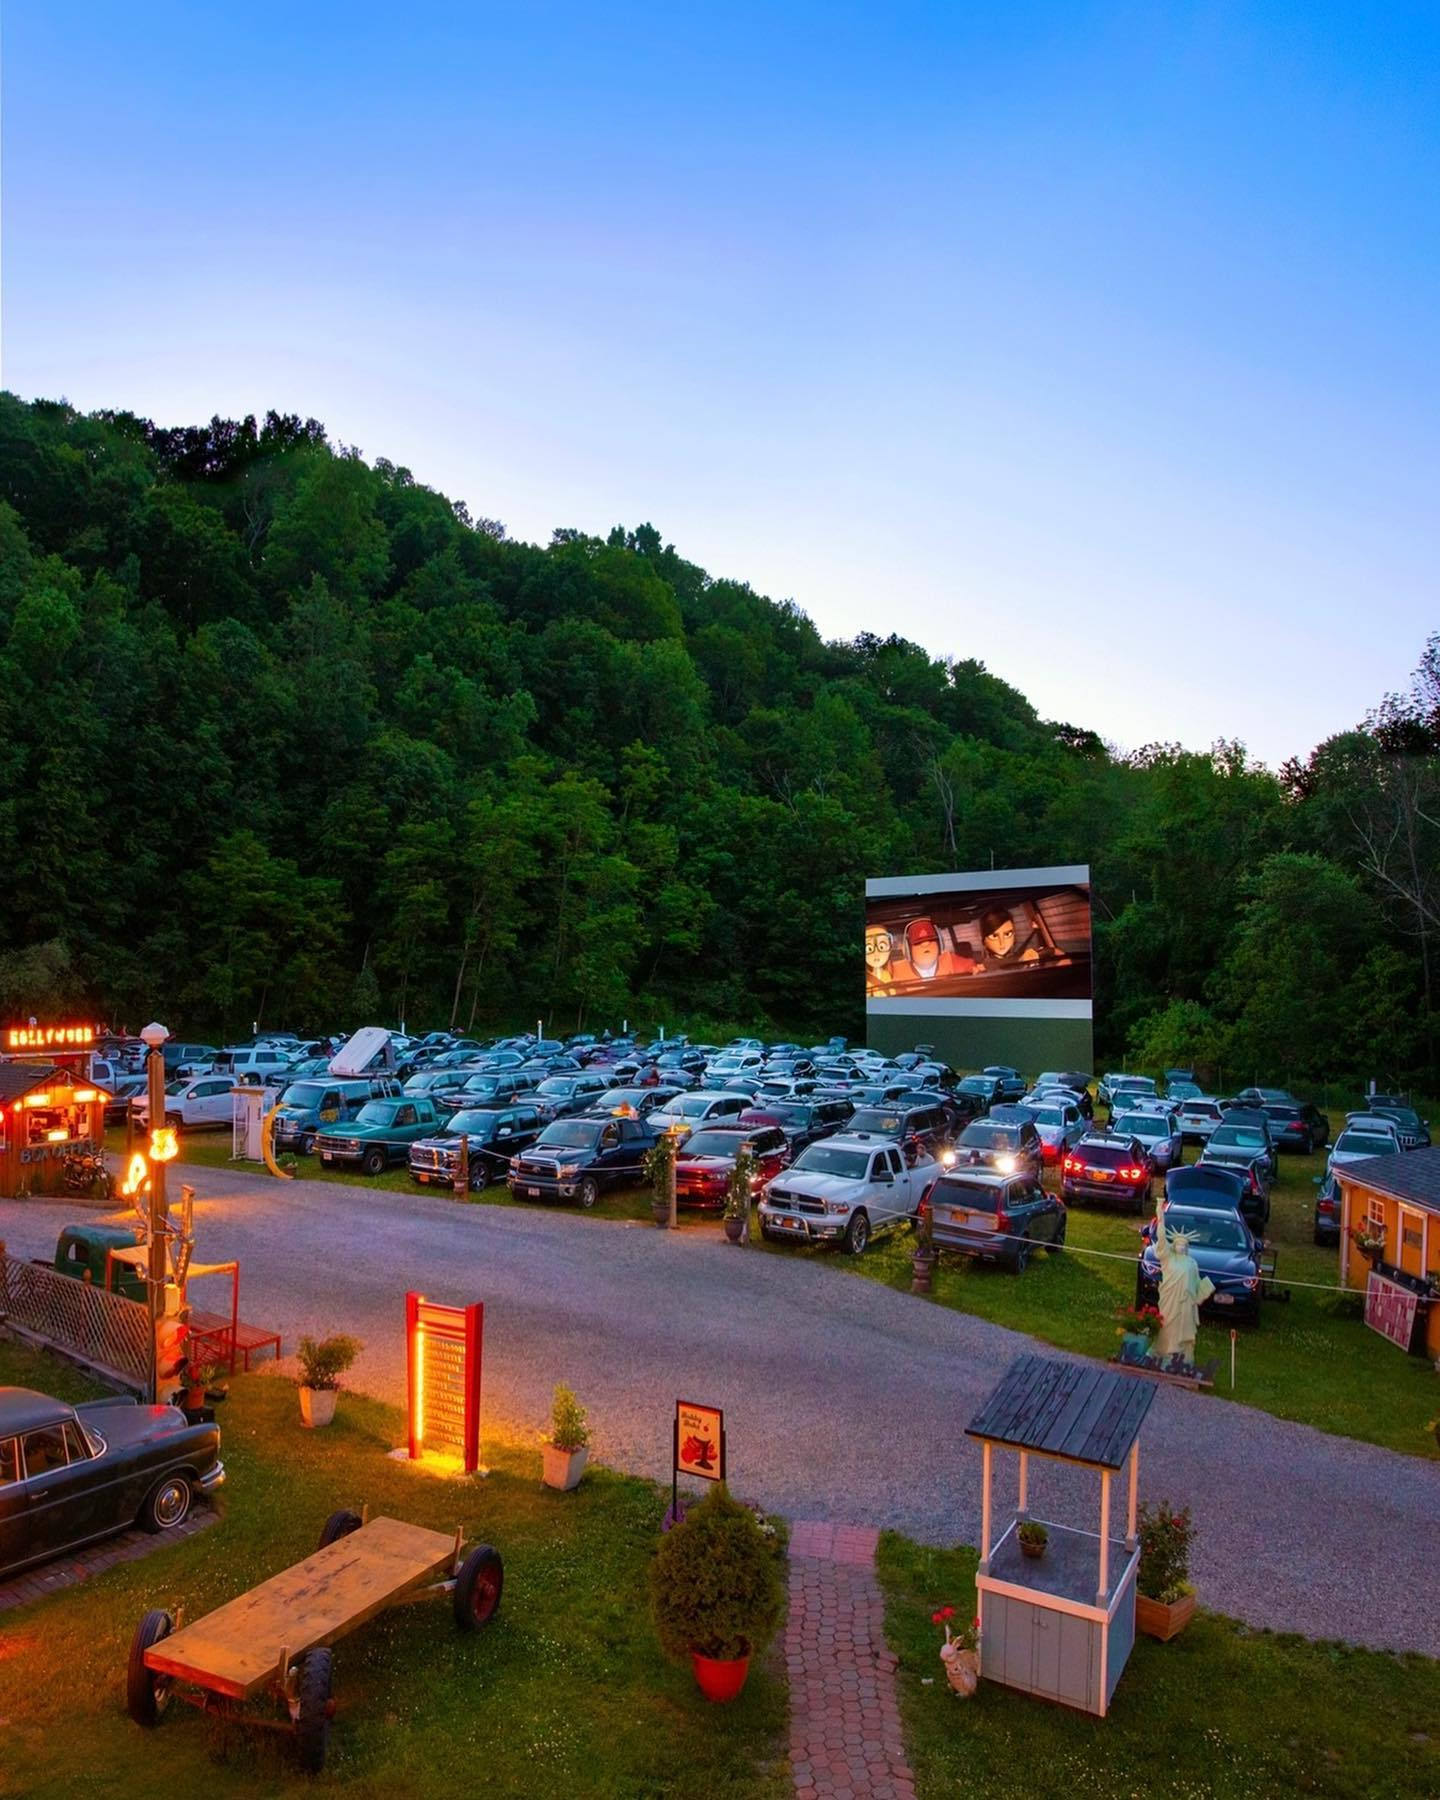 <strong>Located at 4957 Route 22 in Amenia, the Four Brothers Drive-In Theatre has welcomed familiar and new faces alike this summer for a variety of activities, including movies, music, mini-golf and much more.<em>Photos courtesy of Four Brothers Drive-In.</em></strong>